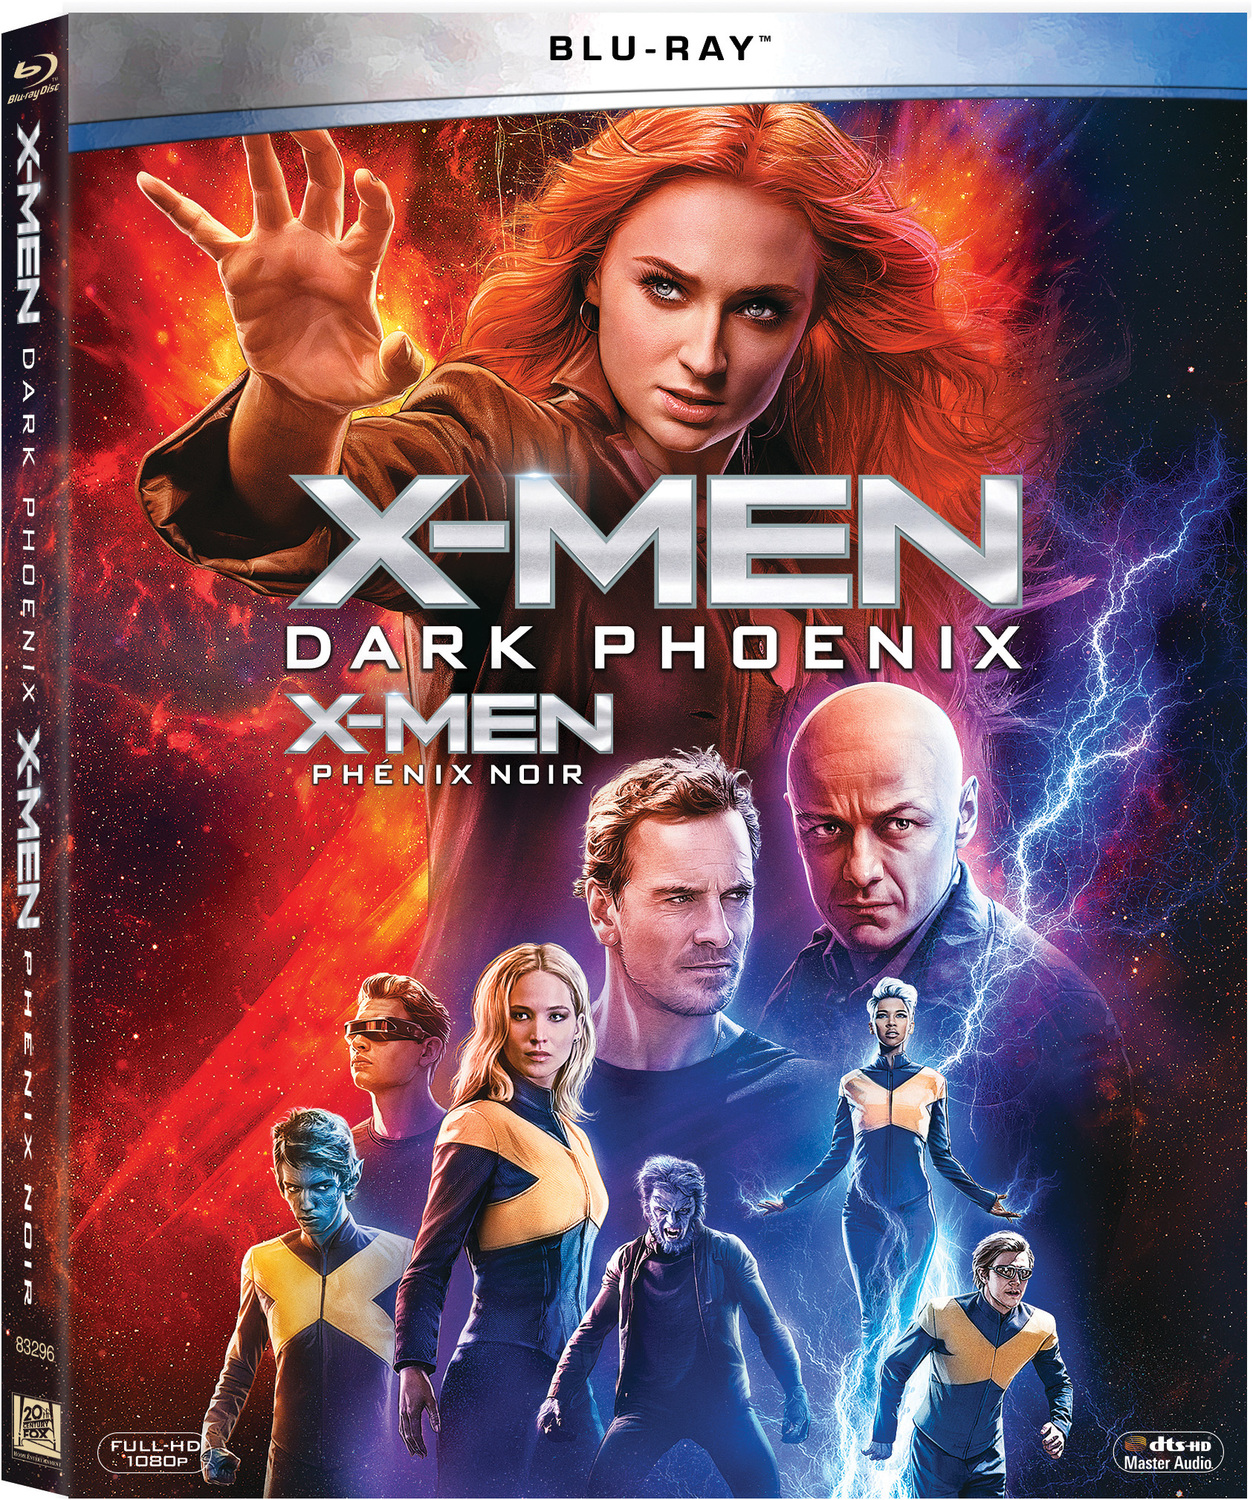 X-Men: Dark Phoenix (Blu-ray) (17-September) - Your